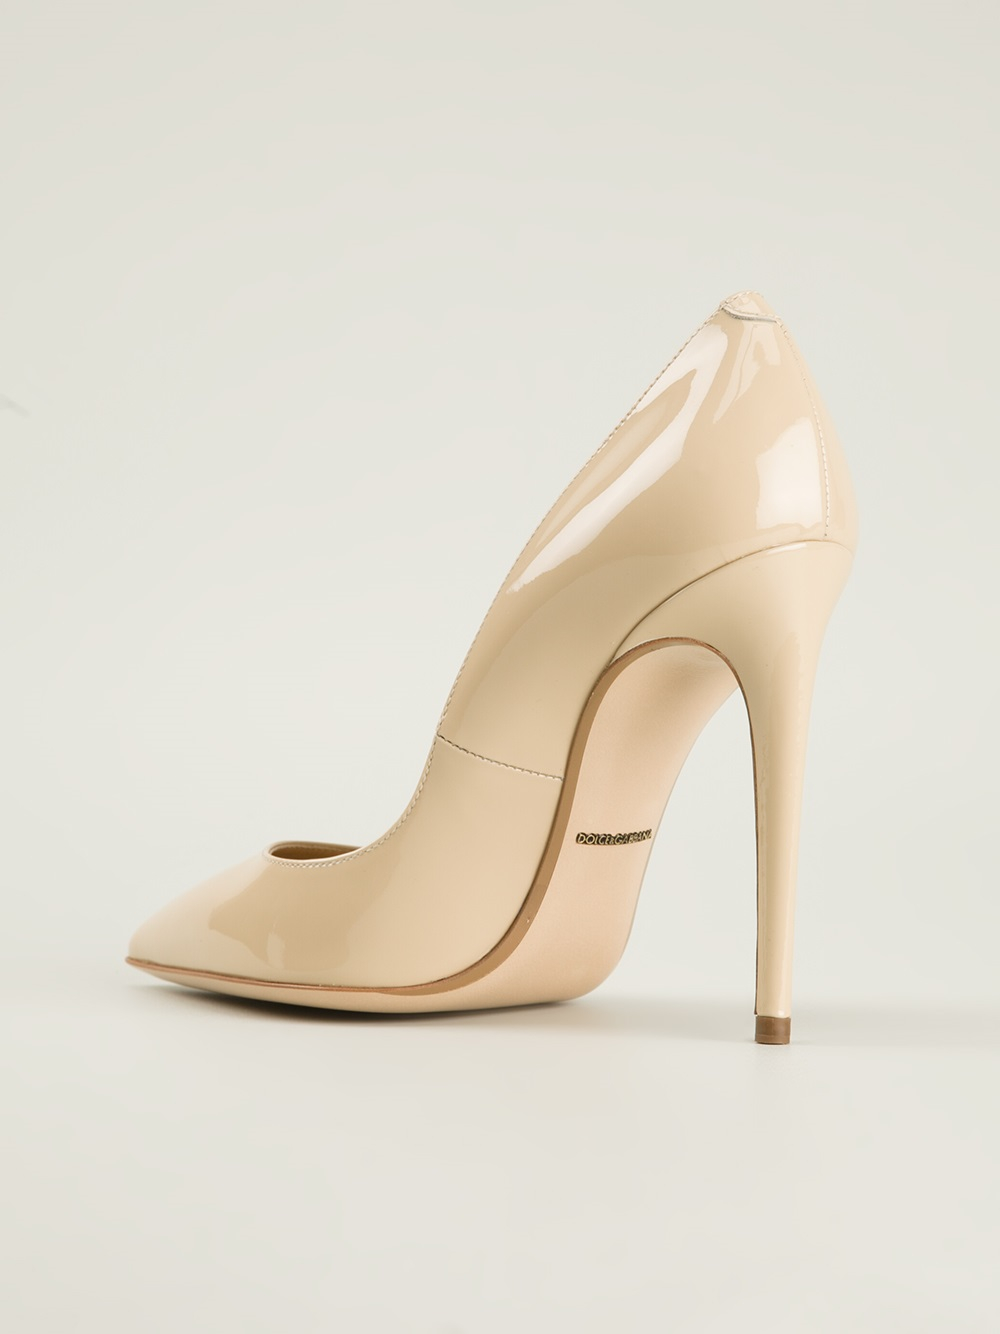 Dolce & Gabbana Pointed toe shoes